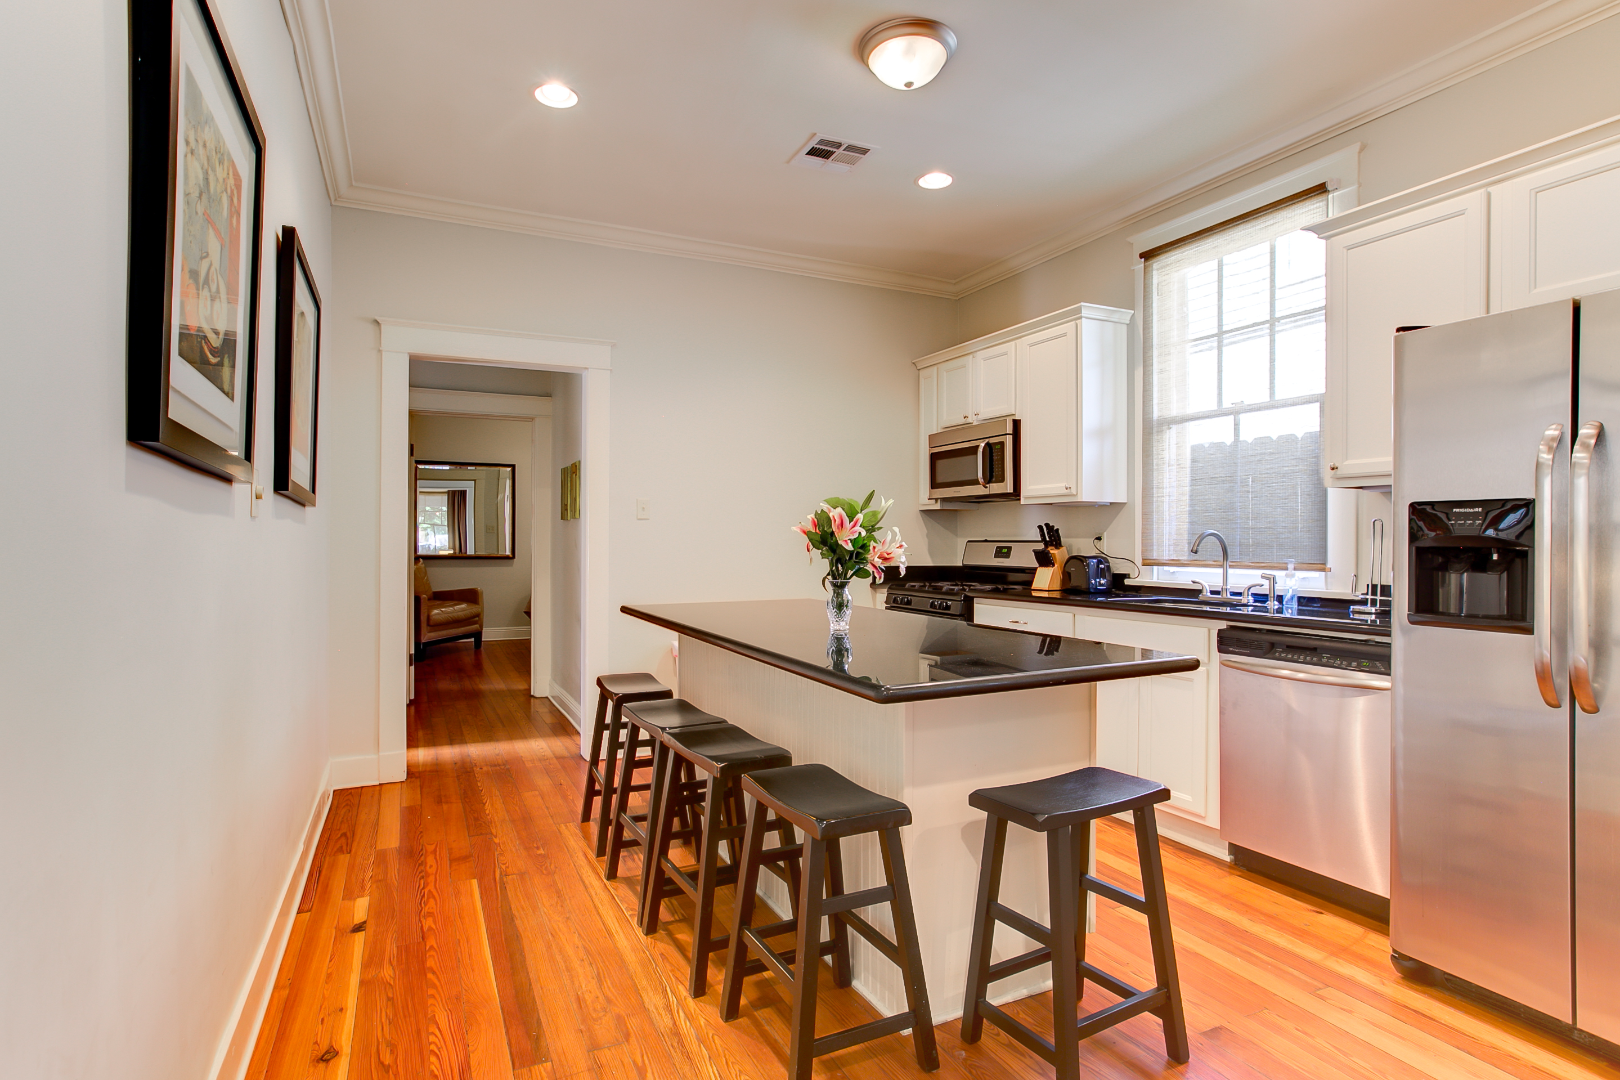 Garden District, House, 3 beds, 2.0 baths, $4000 per month New Orleans Rental - devie image_5